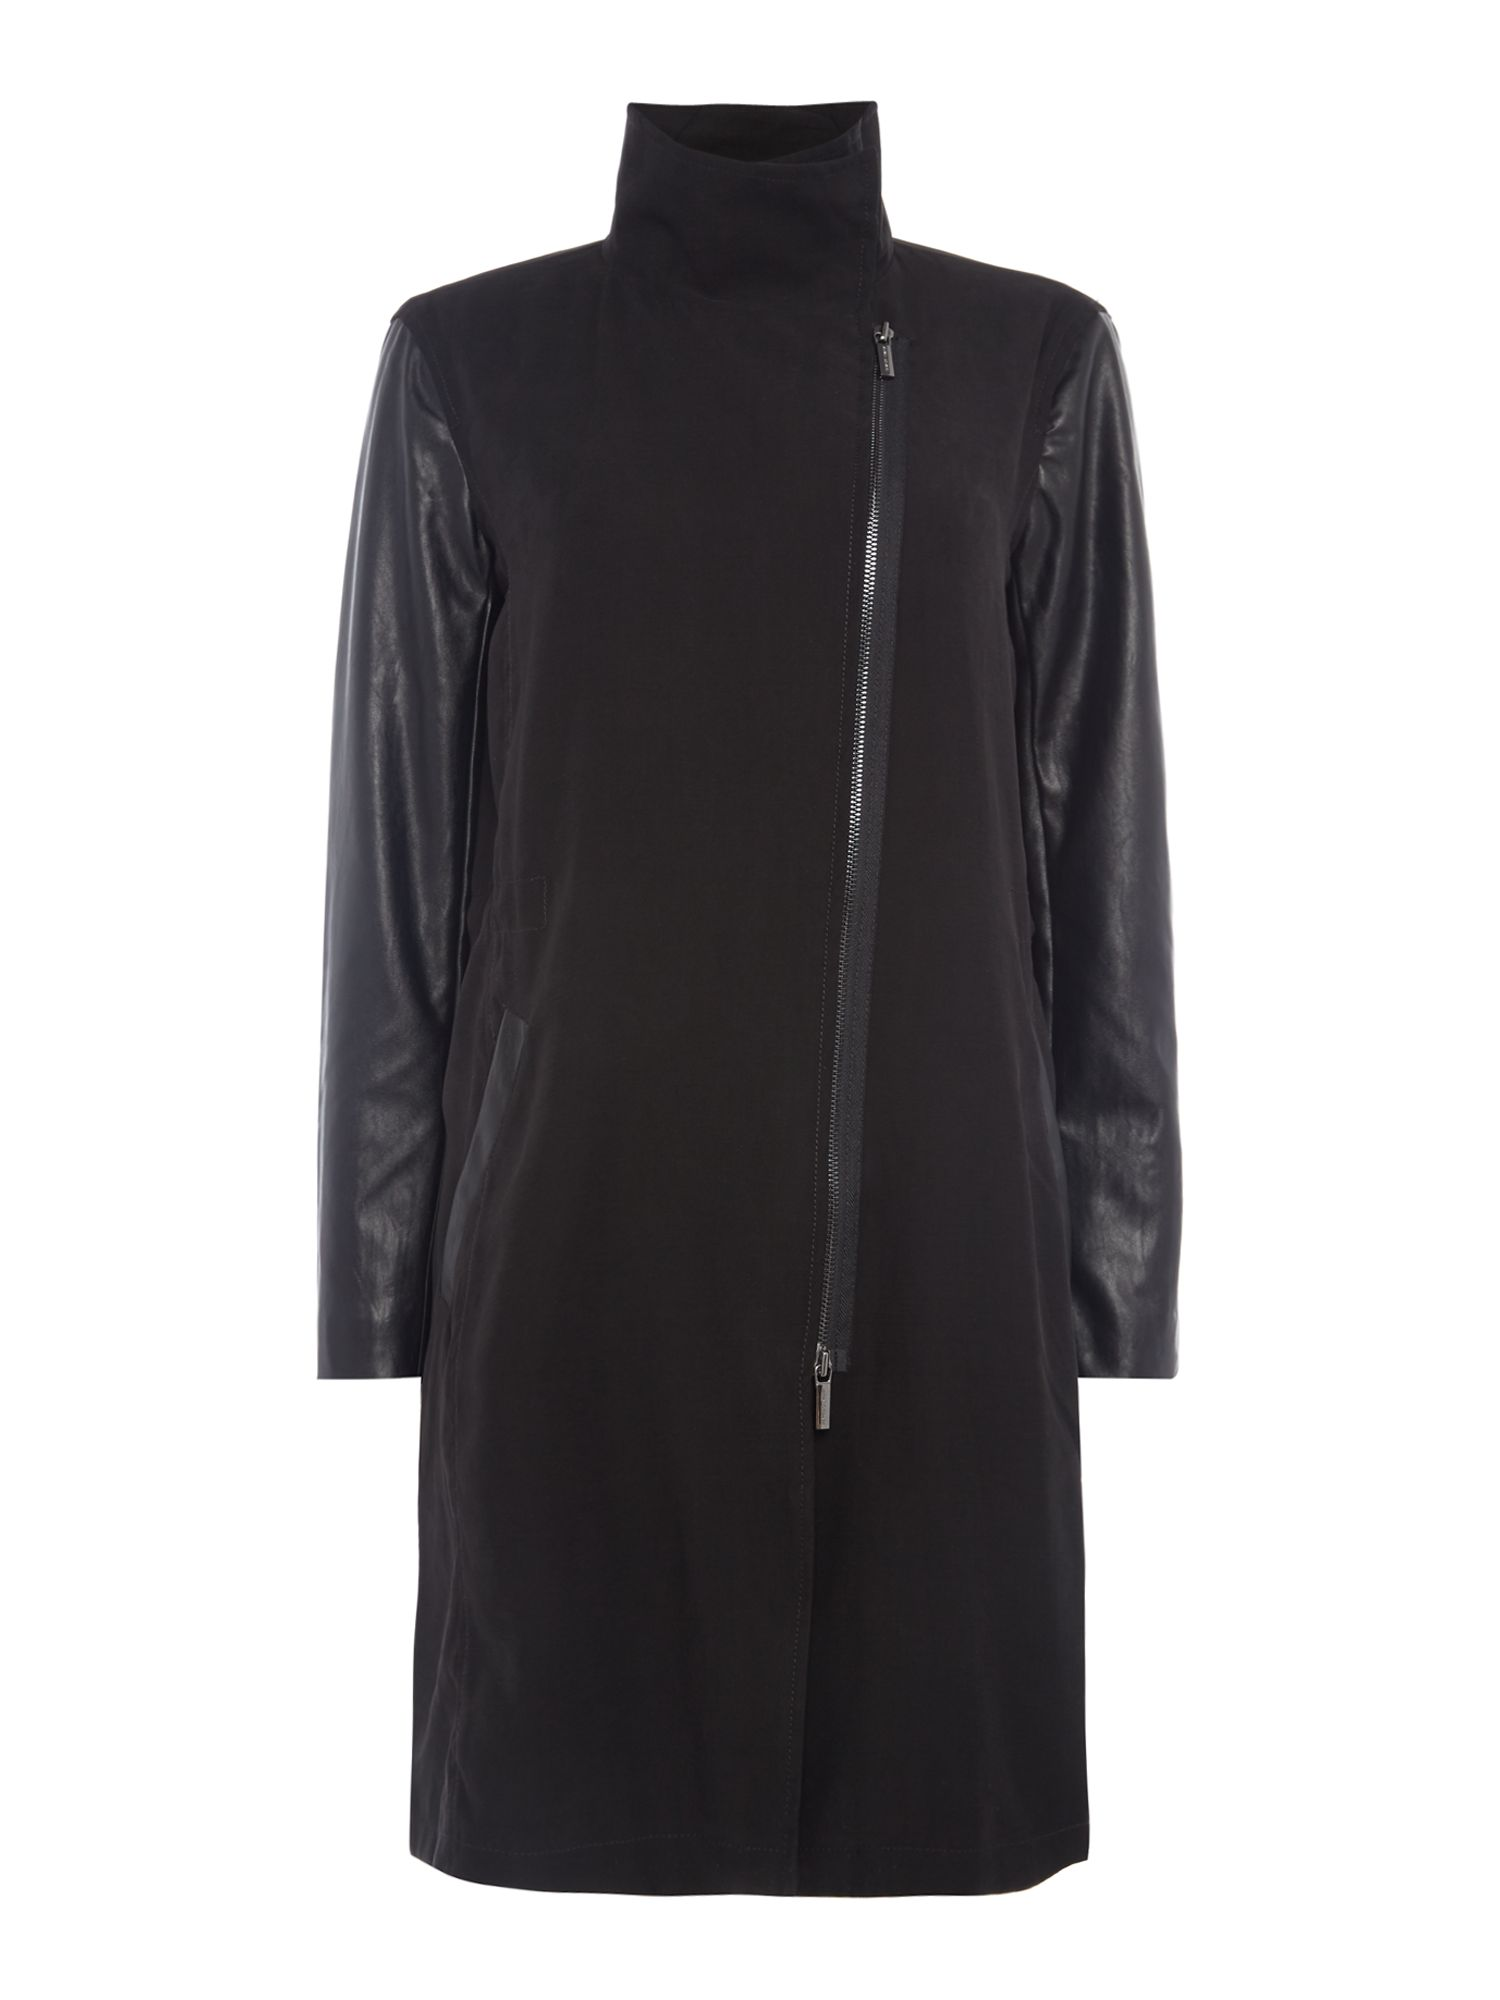 Armani Exchange Long Coat in Black, Black